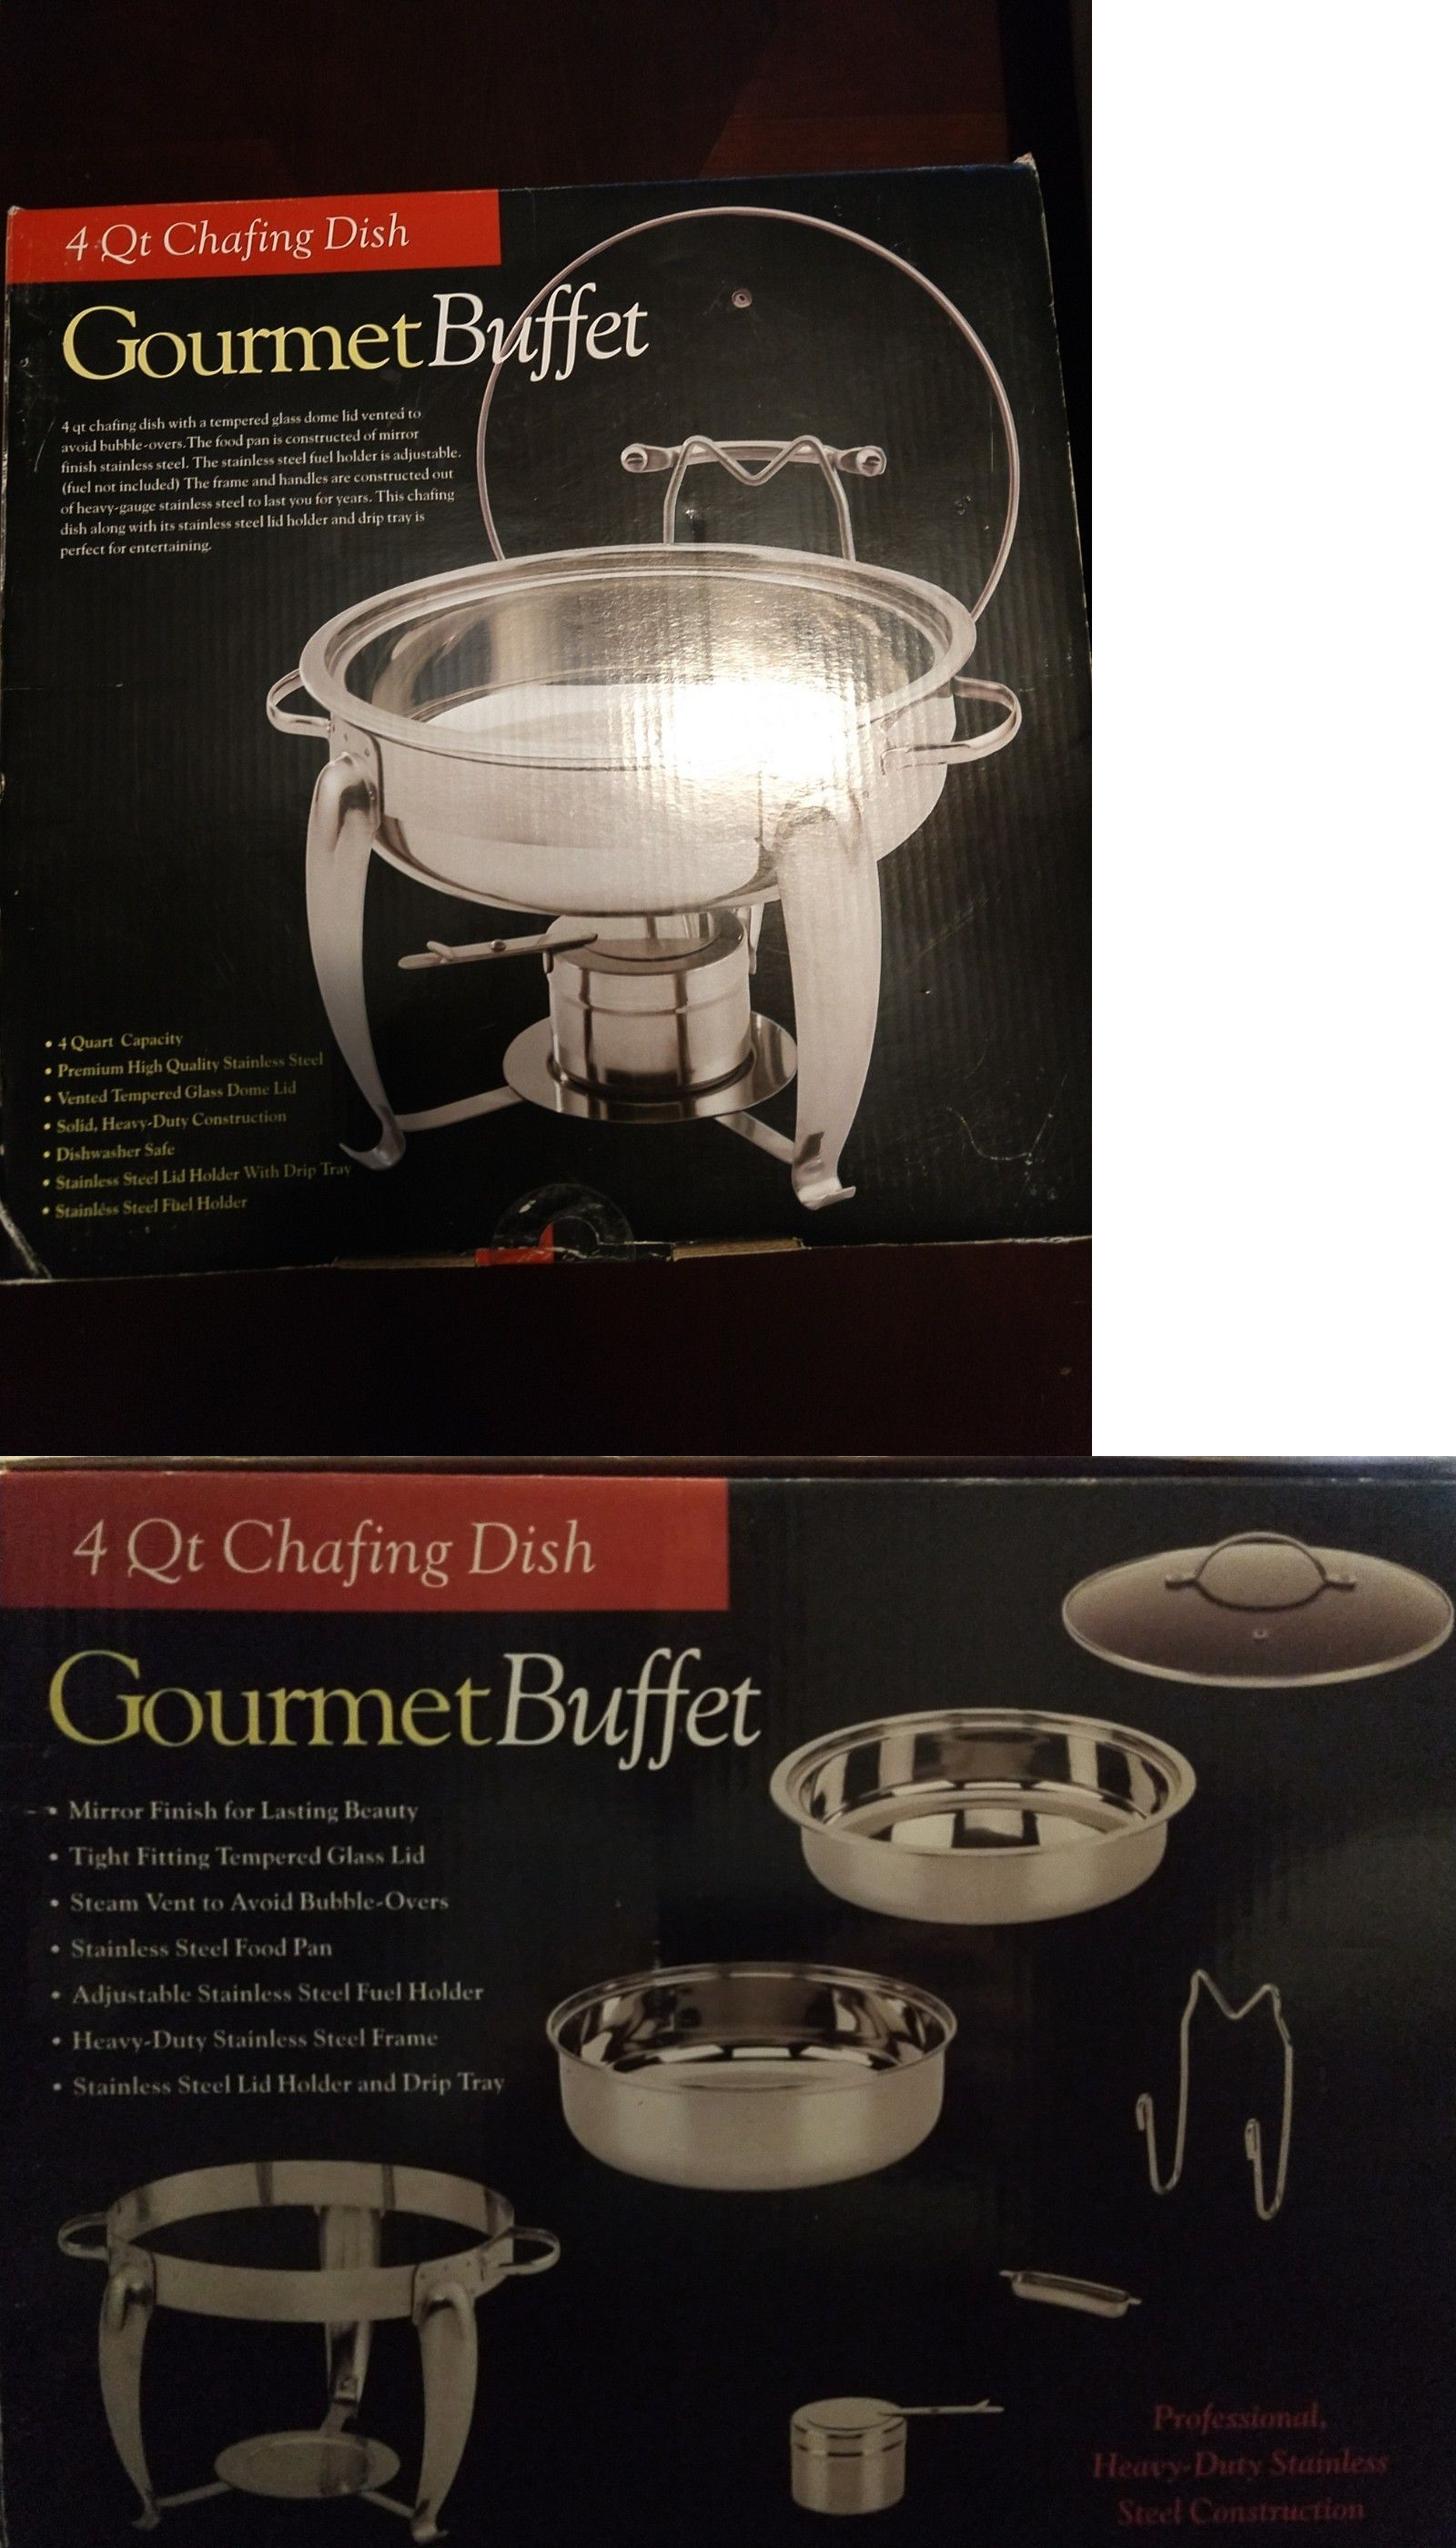 chafing dishes and warming trays 27552 4 qt chafing dish gourmet rh pinterest com